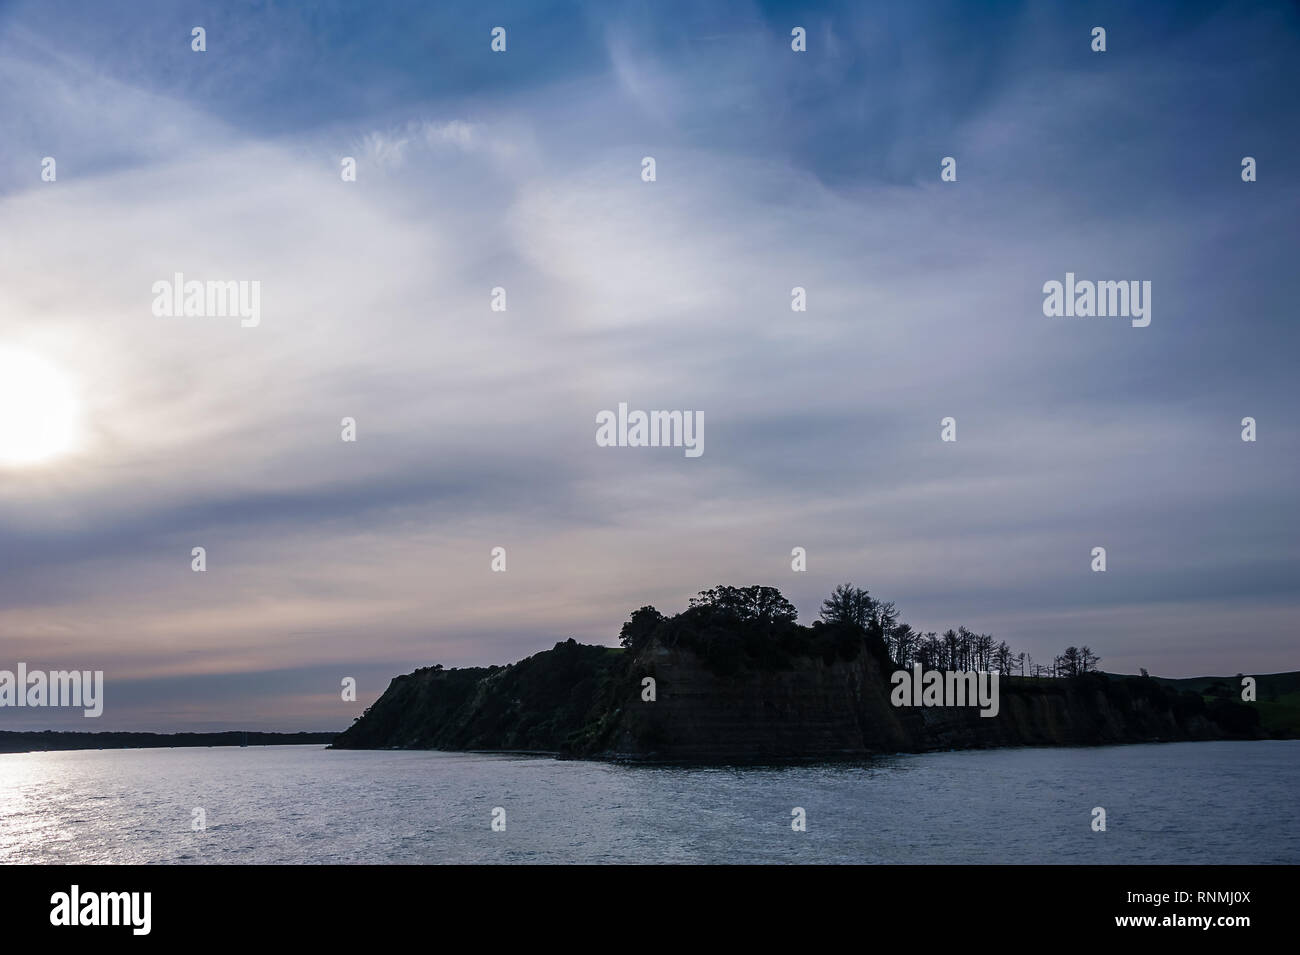 Moody sunset in the Hauraki Gulf, Waiheke to Auckland. Breathtaking landscape, headland silhouetted against setting sun. - Stock Image